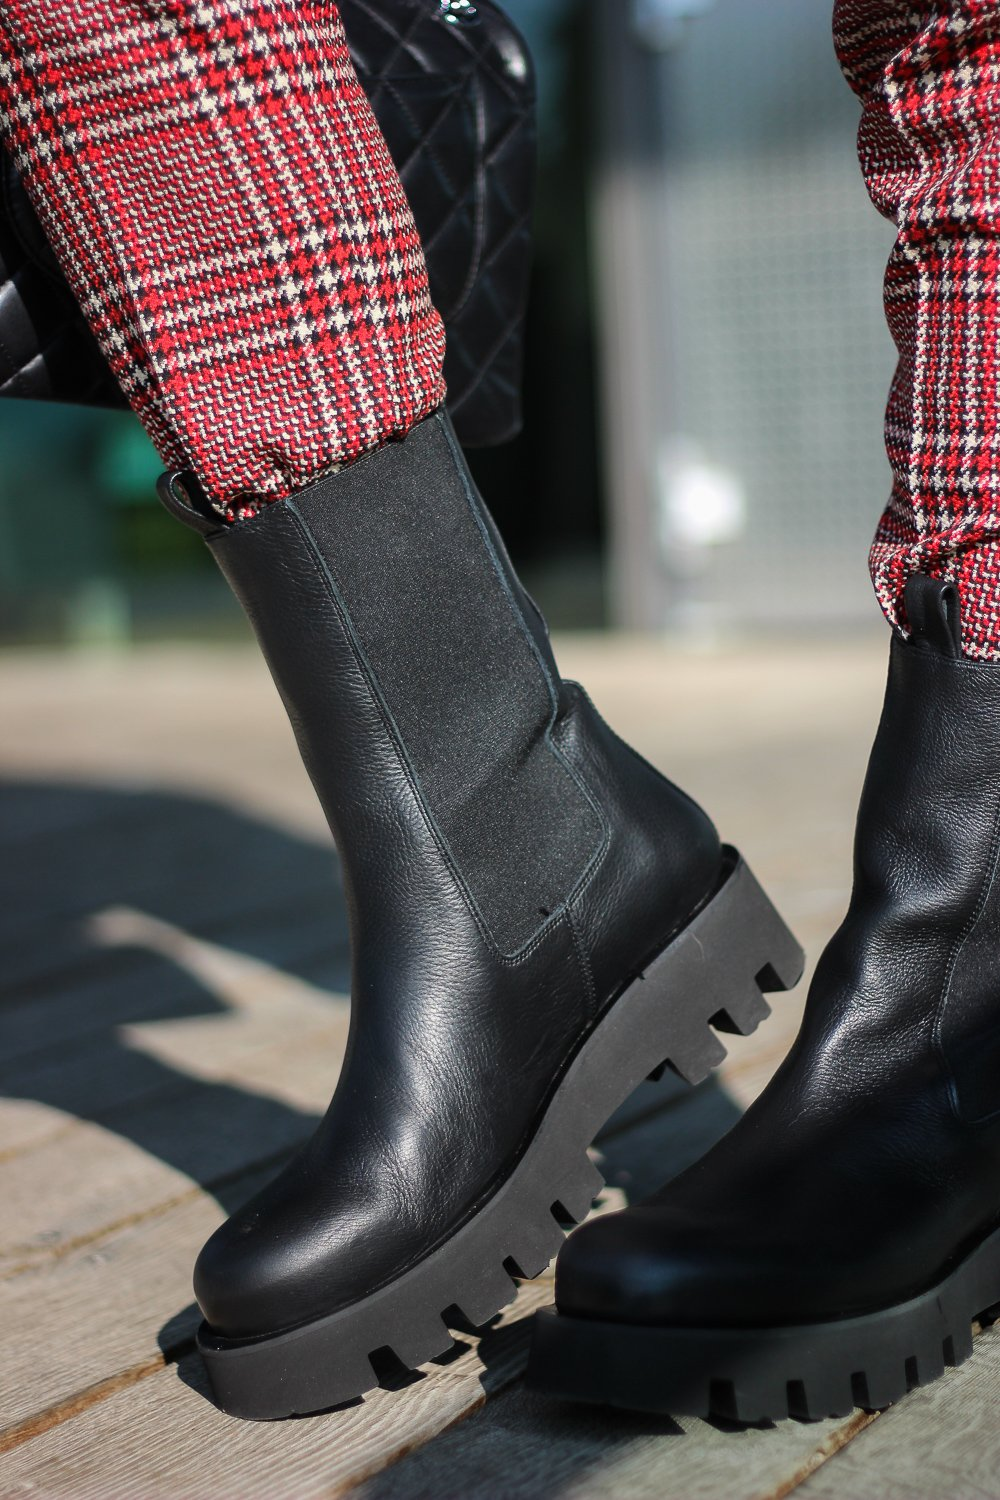 conny doll lifestyle: Boots, Karo-Hose, TONI-Fashion, edgy-Styling, Herbstlook